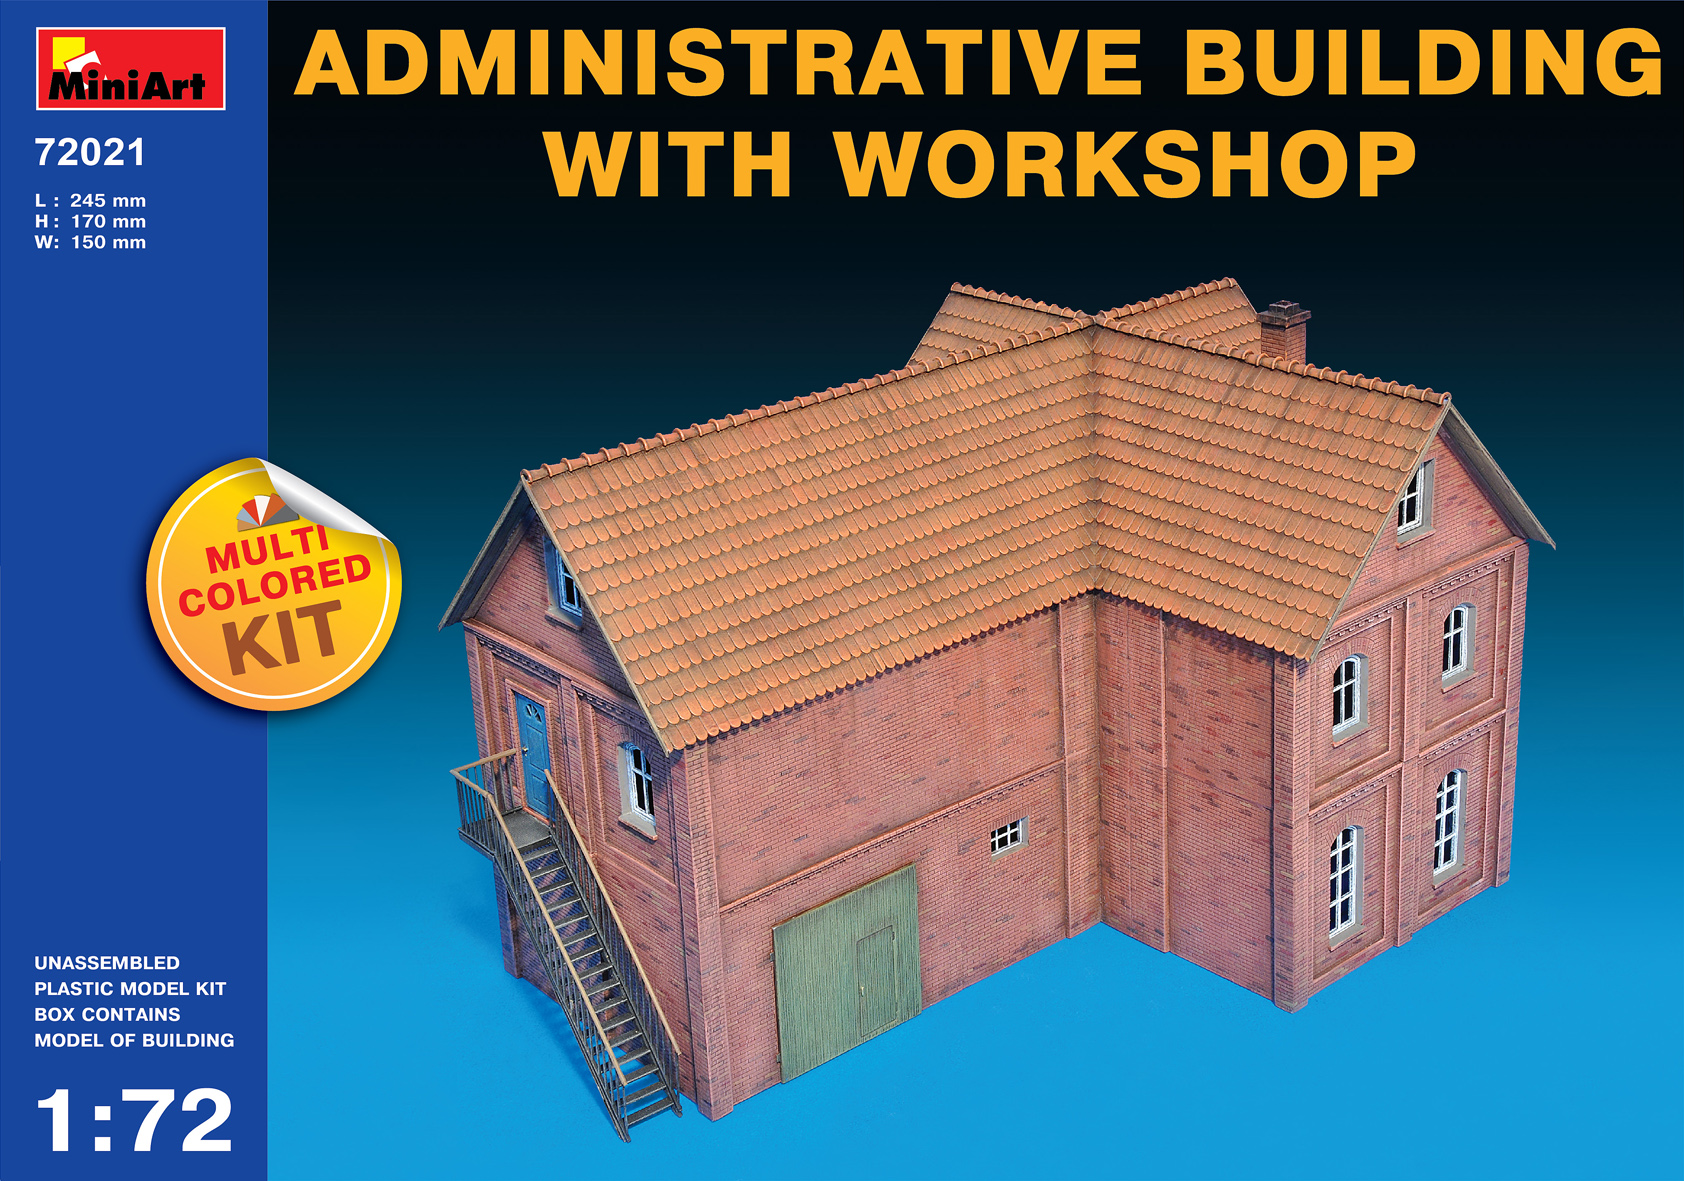 72021 ADMINISTRATIVE BUILDING WITH WORKSHOP